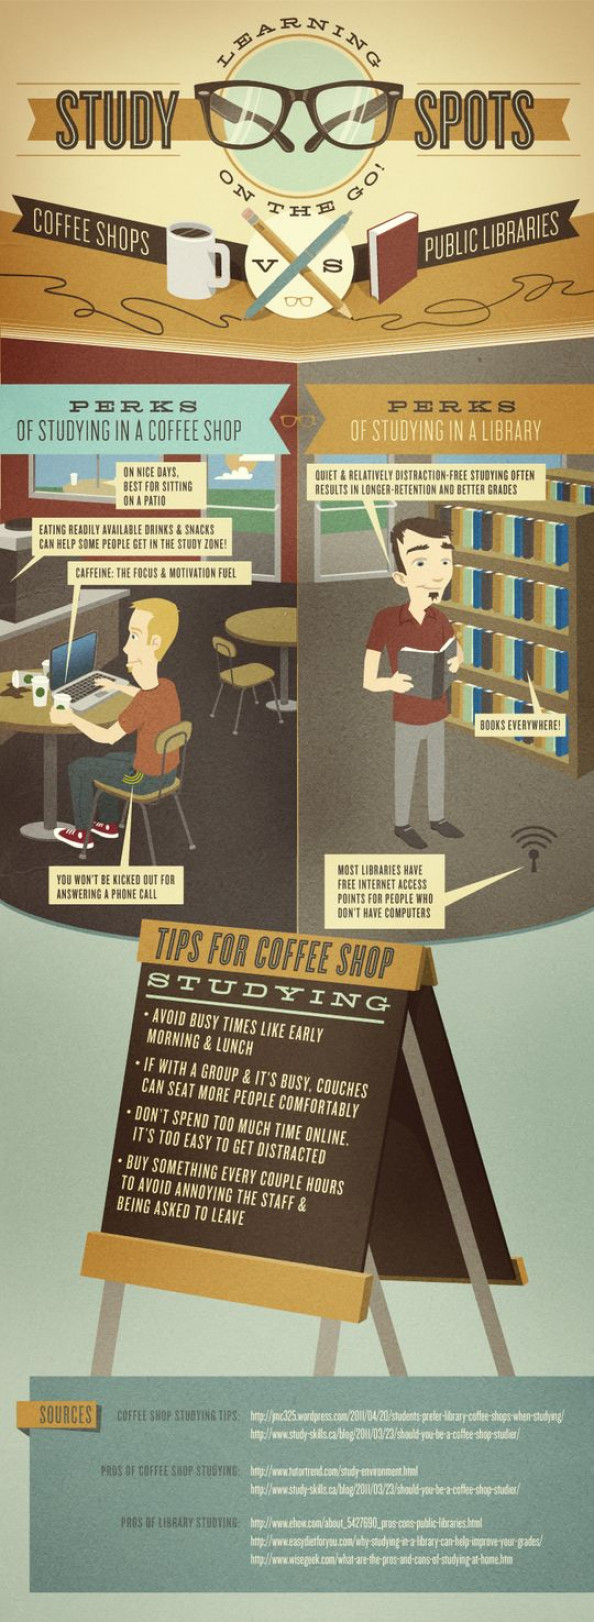 Study Spots Learning on the Go Infographic